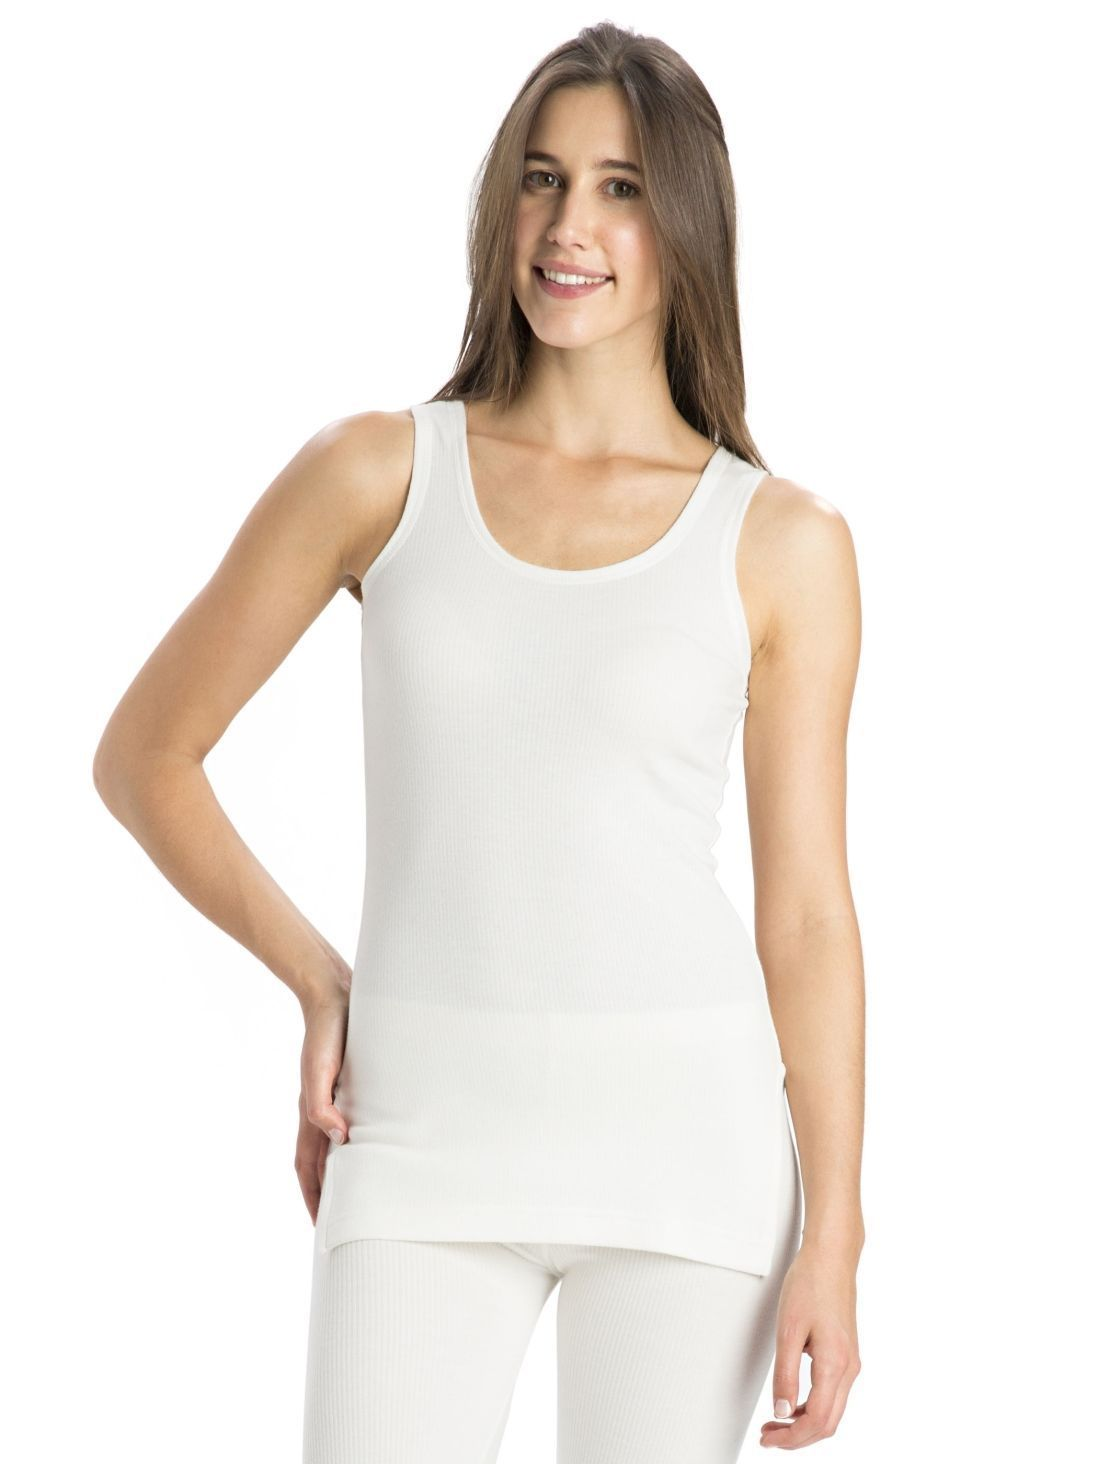 1Pc Jockey Thermal Camisole Top For Women Comfort Wear  2500-S M L ... 0a4e184b34c